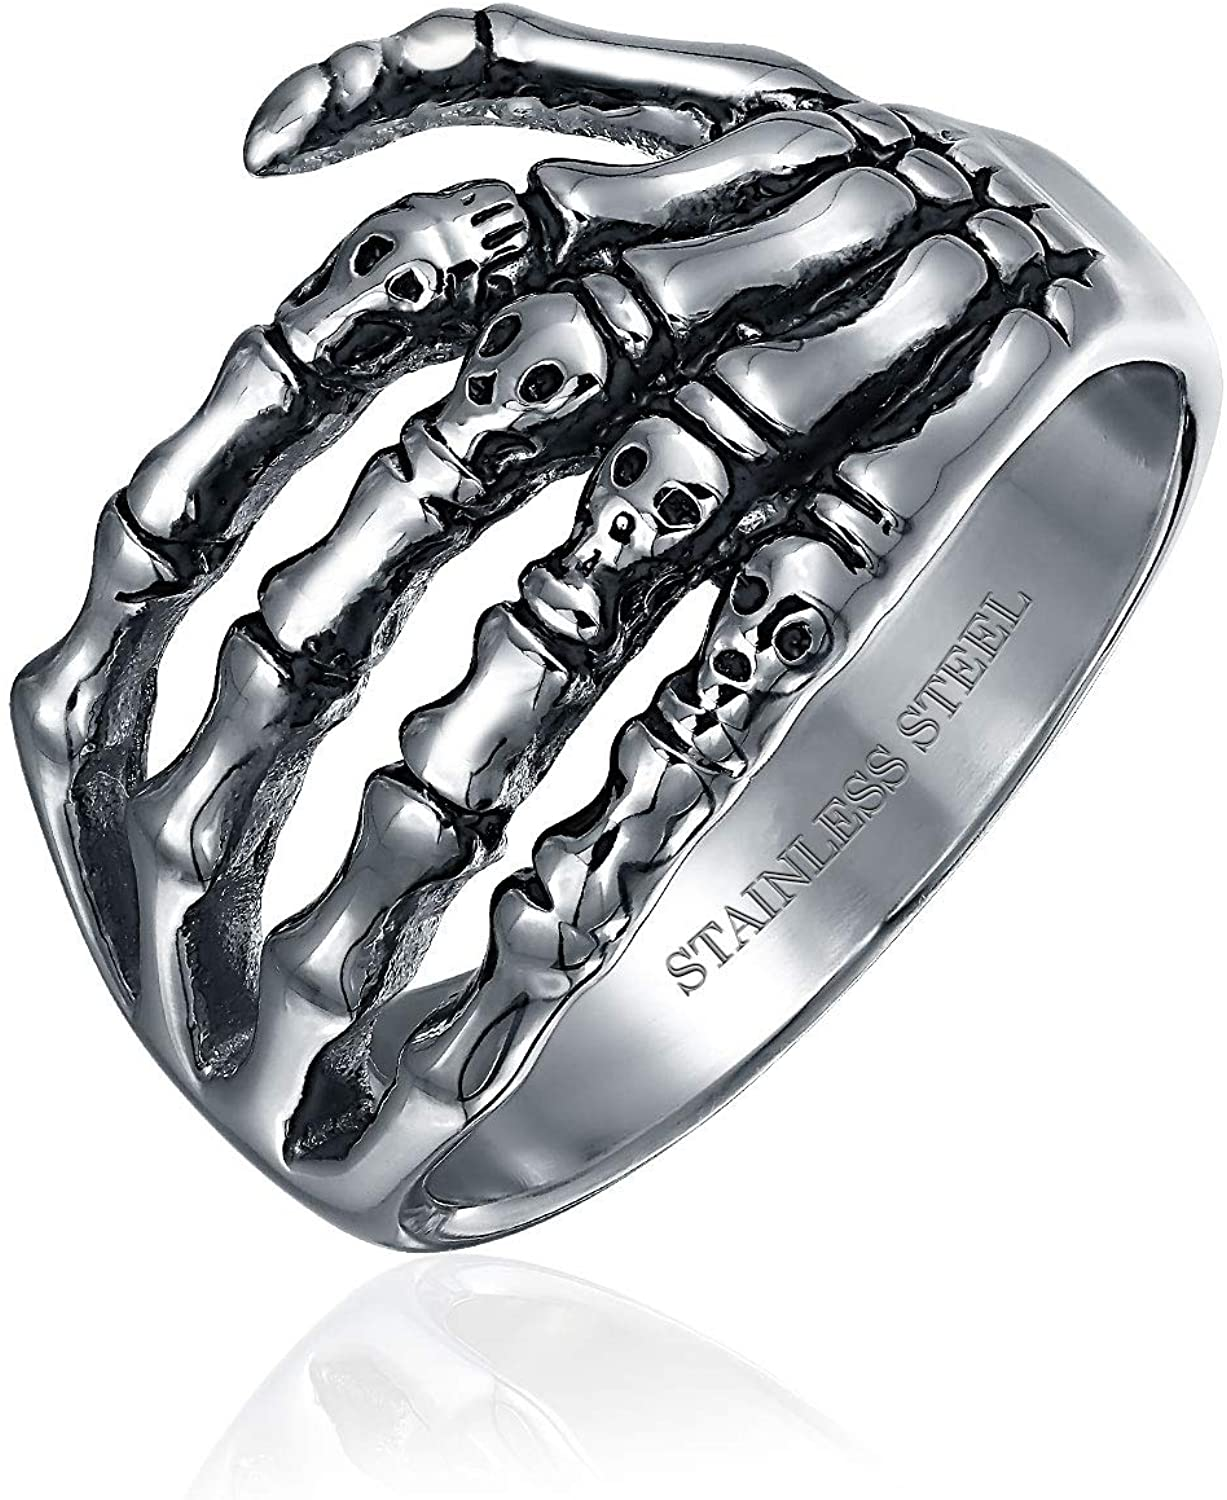 Bling Jewelry Goth Biker Punk Rocker Skelton Hand Wrap Band Ring for Men for Teen Oxidized Silver Tone Stainless Steel